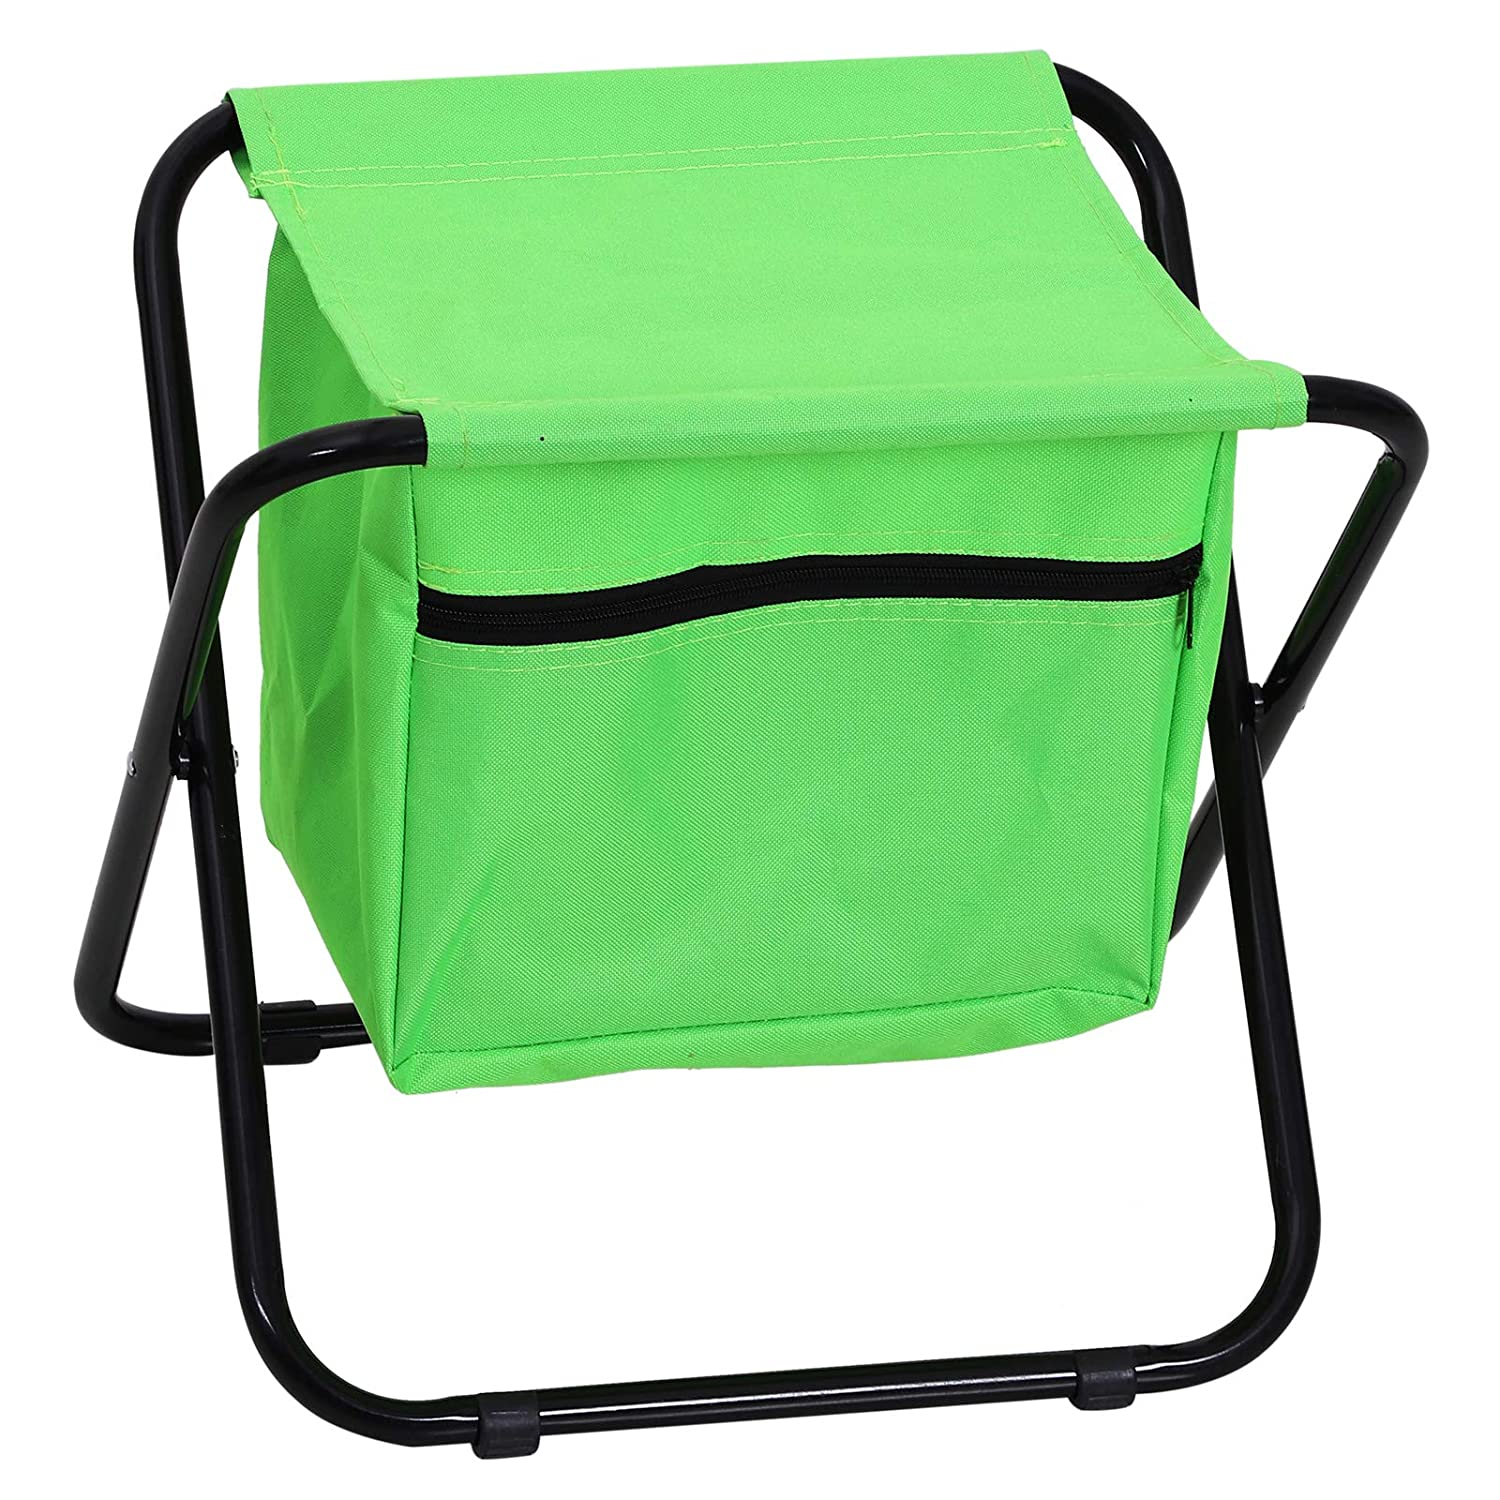 Outsunny Folding Garden Tool Stool Kit Storage Bags 3pc Tools Outdoor Lightweight Portable